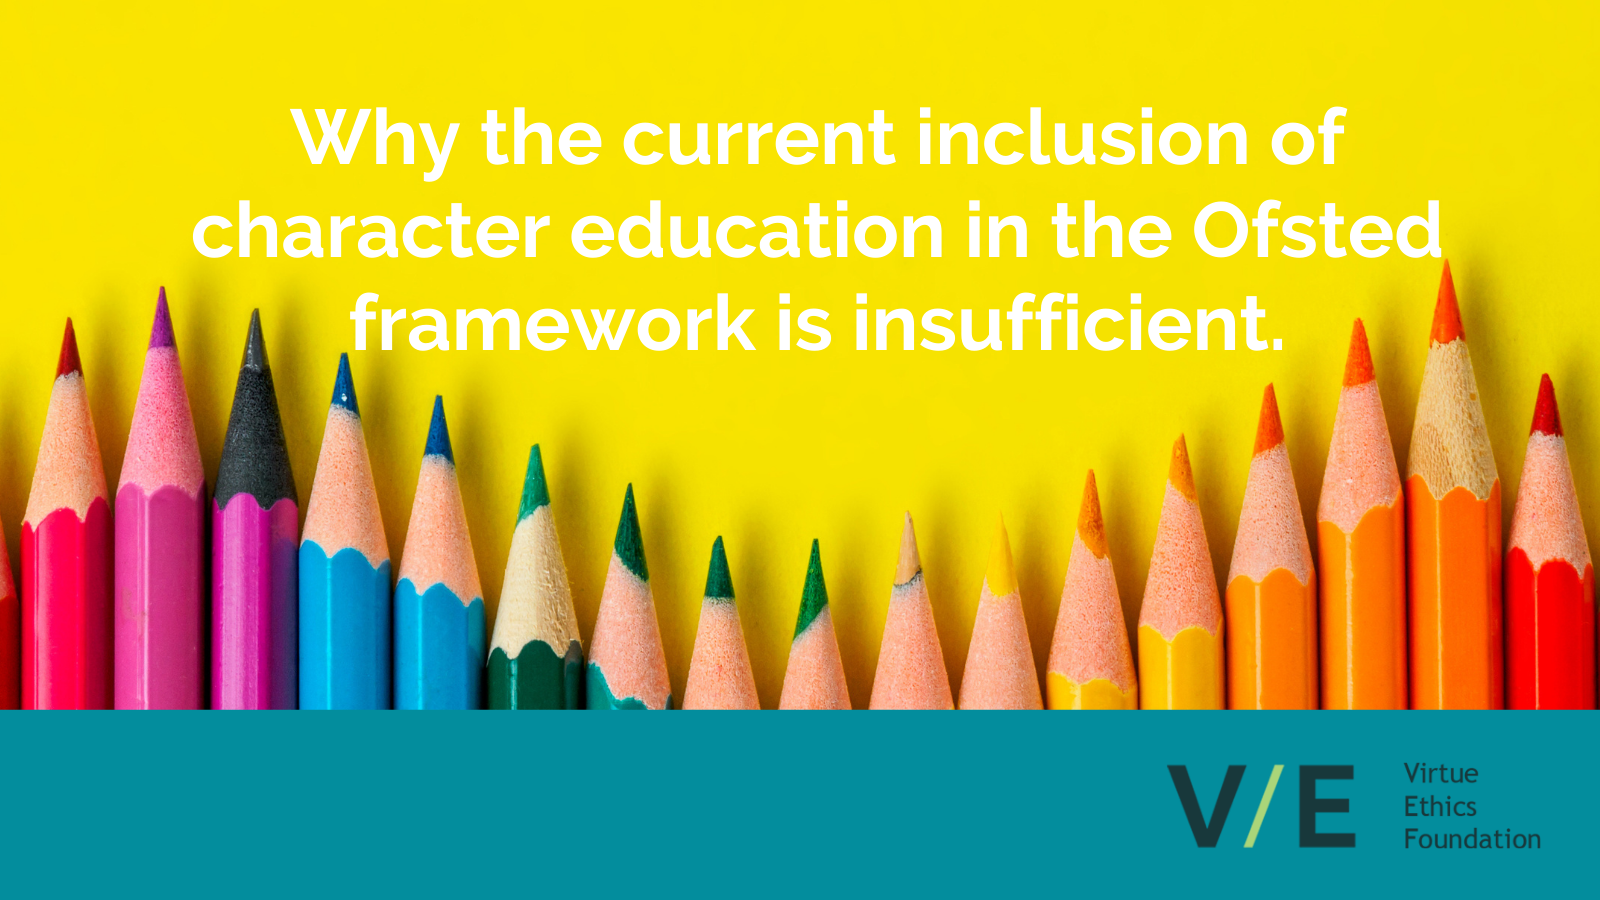 Why the current inclusion of character education in the Ofsted framework is insufficient